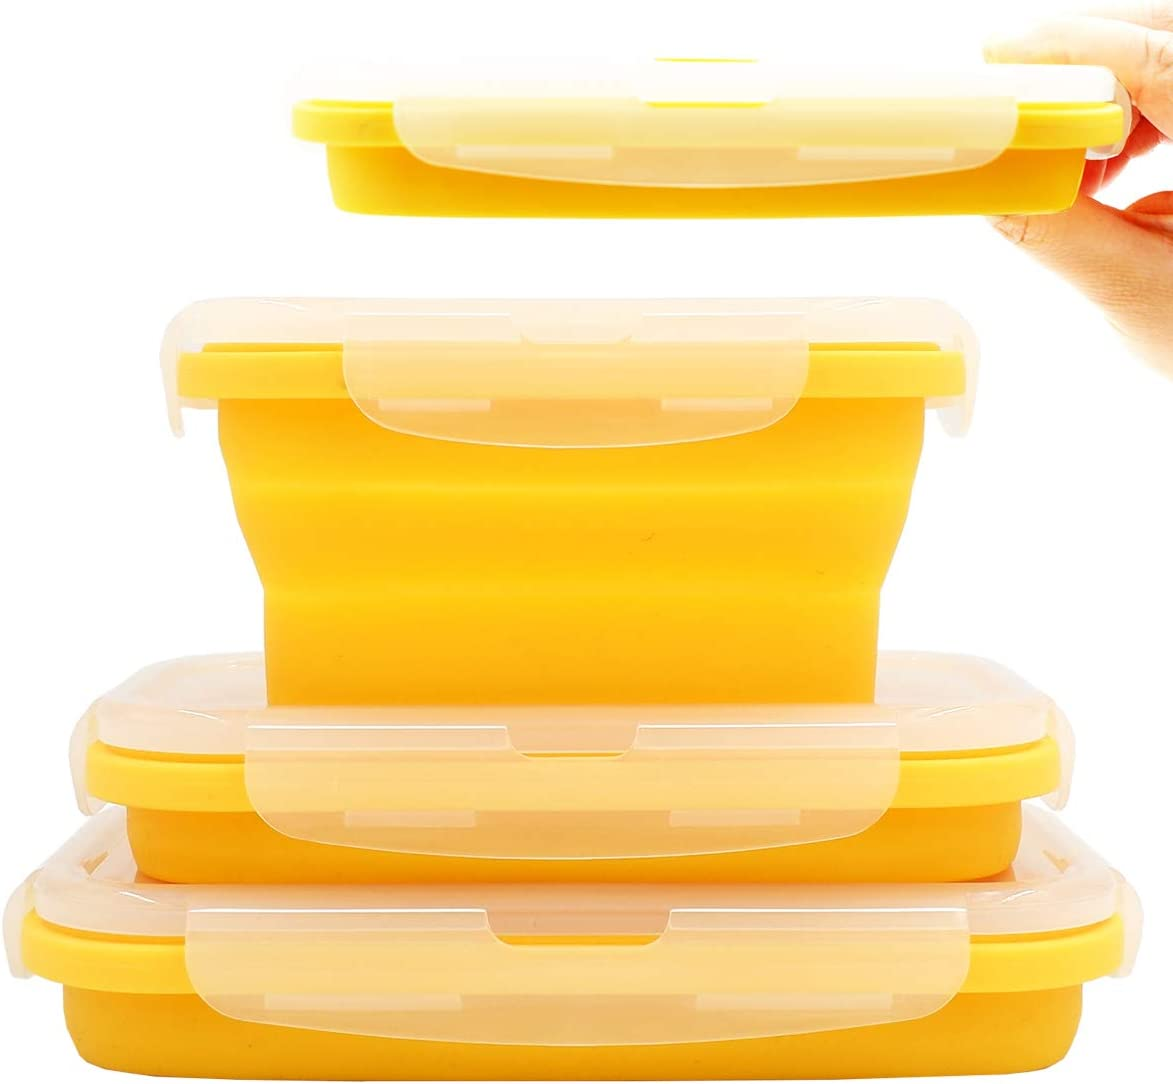 Duoyou Collapsible Silicone Lunch Bento Box, Portable Food Storage Container Outdoor Picnic Box Space Saving, Microwave, Dishwasher and Freezer Safe, 3 Pcs Set (Orange)